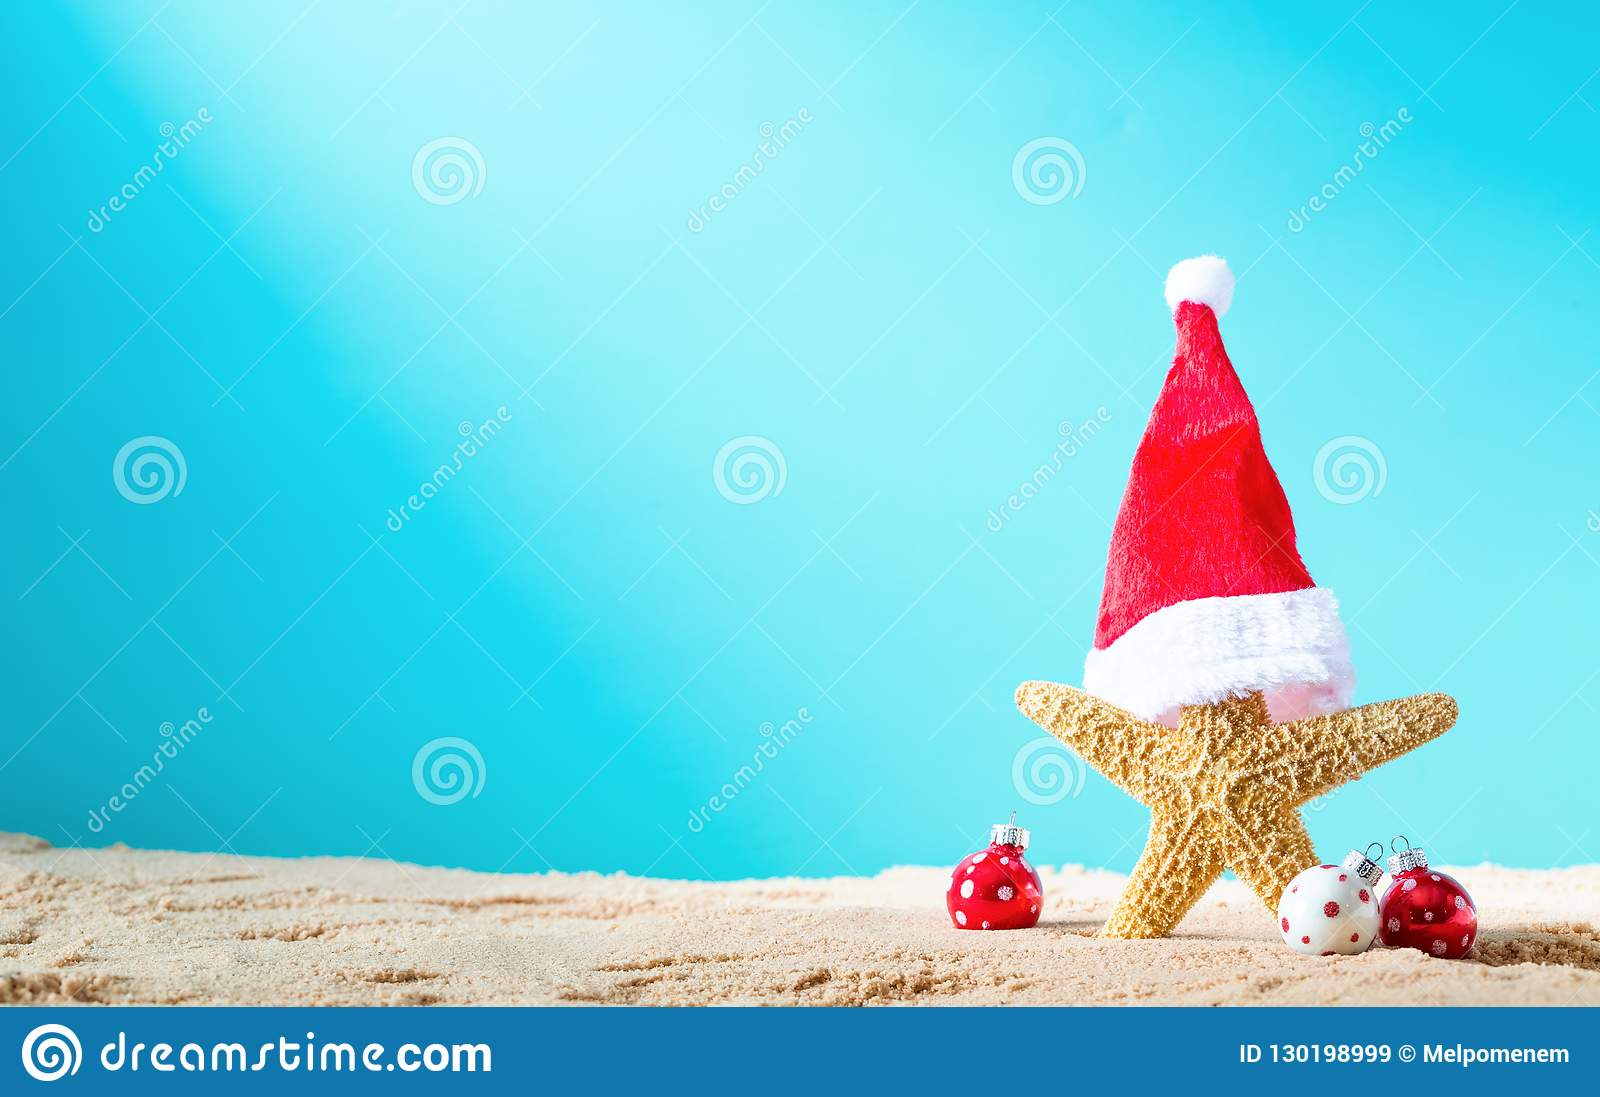 Starfish With Santa Hat On The Beach With Christmas Ornaments Stock